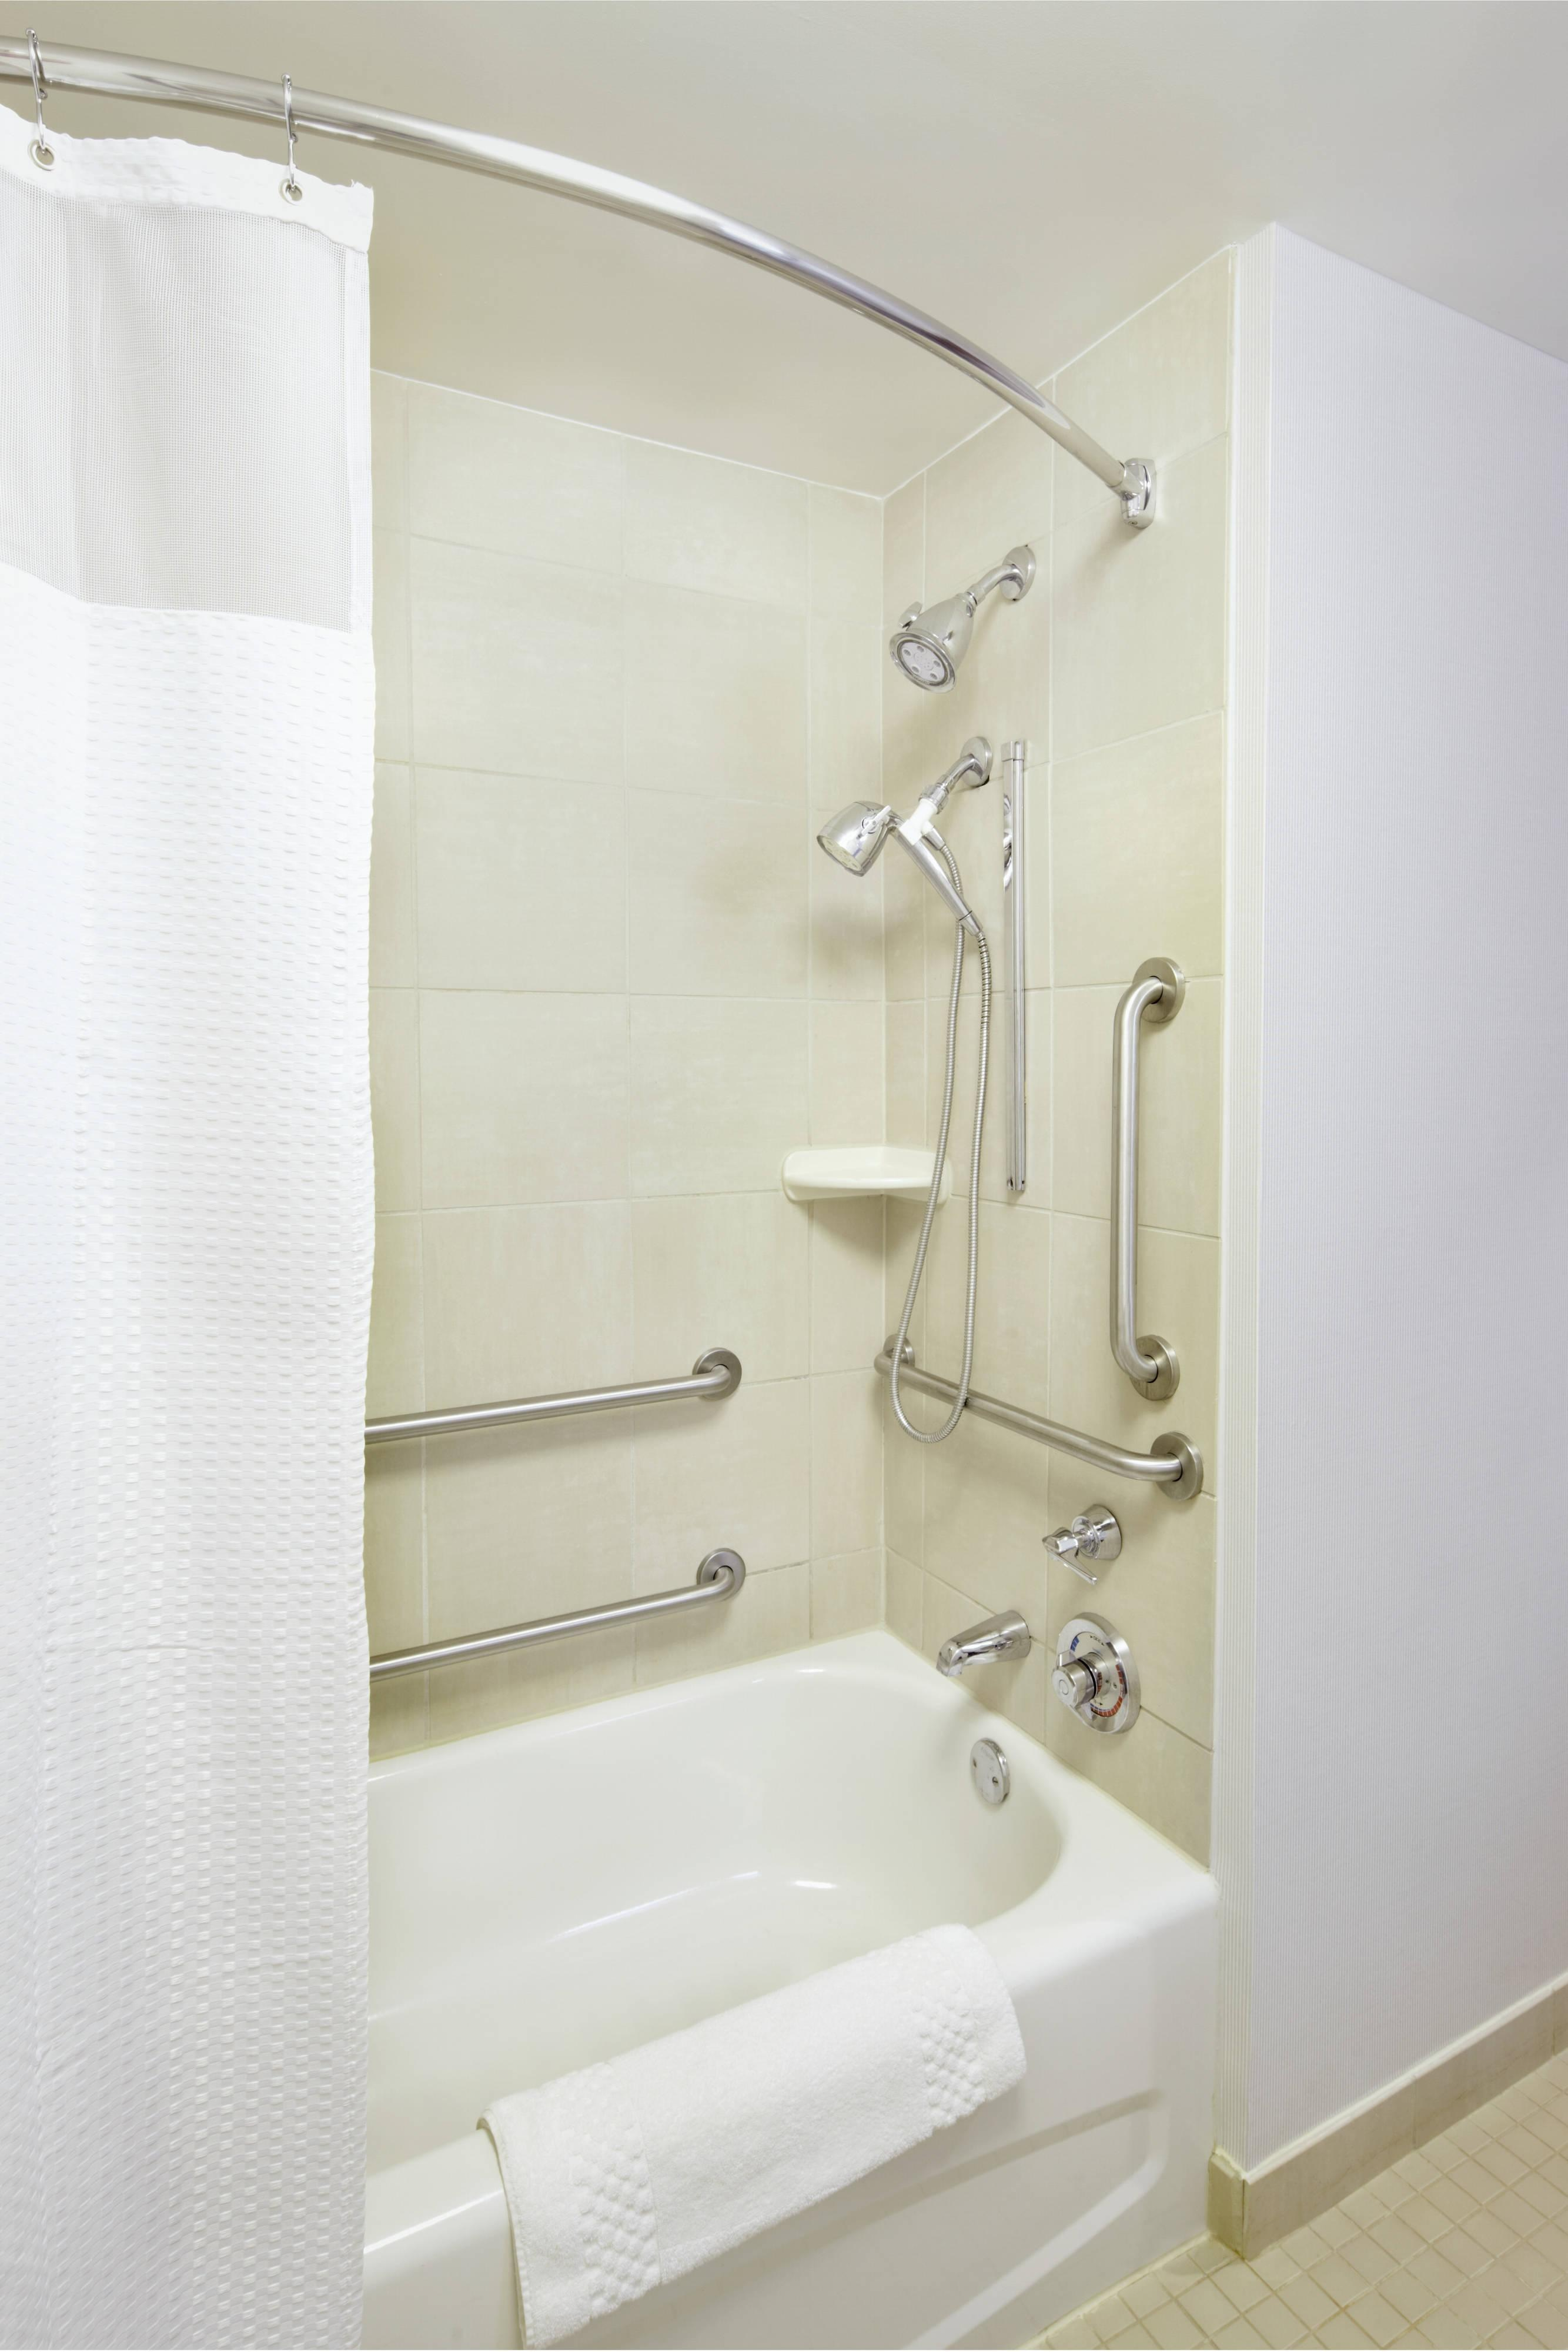 Accessible Bathroom – Bathtub